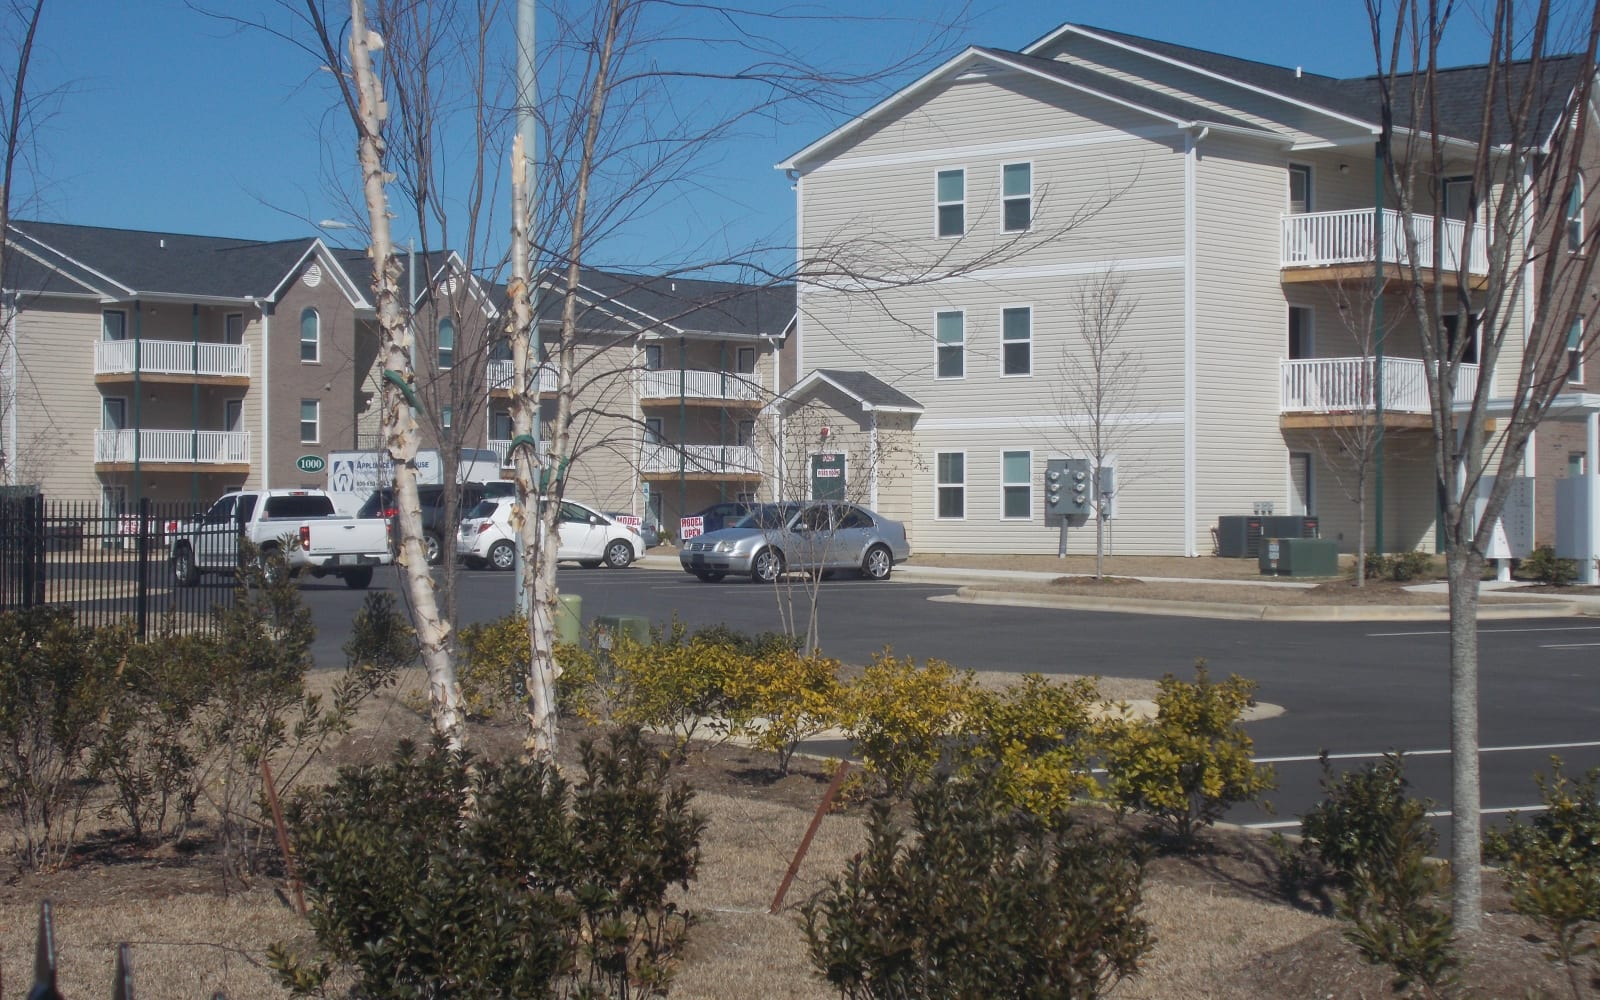 Landscaping and parking lot at Wedgefield Apartments in Raeford, North Carolina